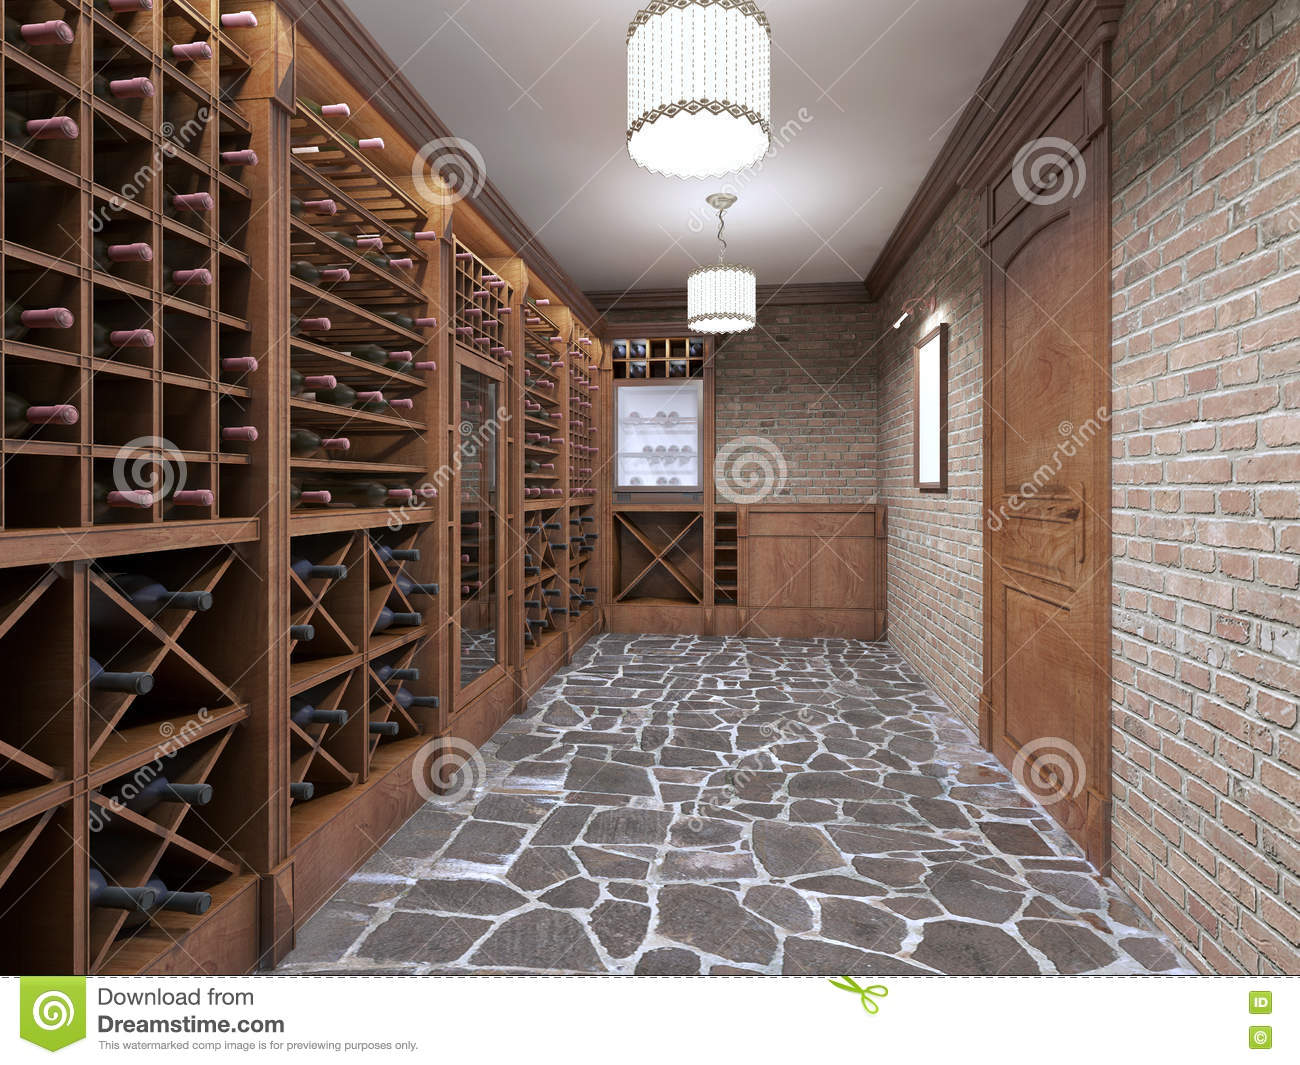 Wine Cellar In The Basement Of The House In A Rustic Style Stock Illustration Illustration Of House Storage 79503305